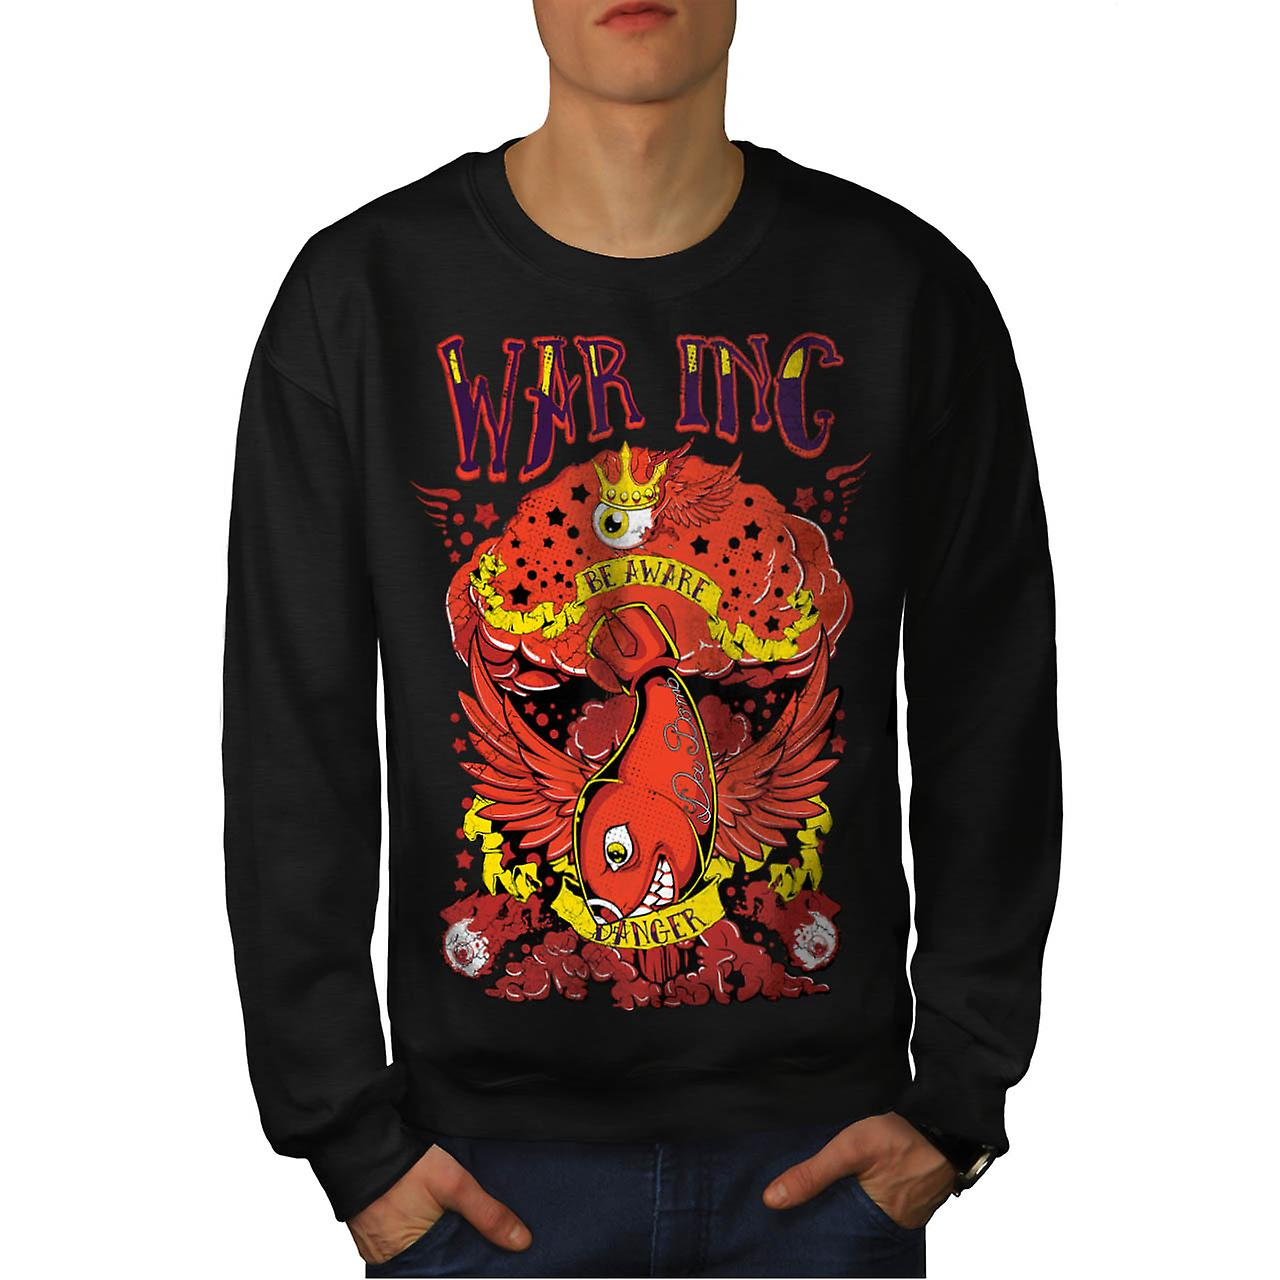 War Danger Beware Fish Extreme Men Black Sweatshirt | Wellcoda